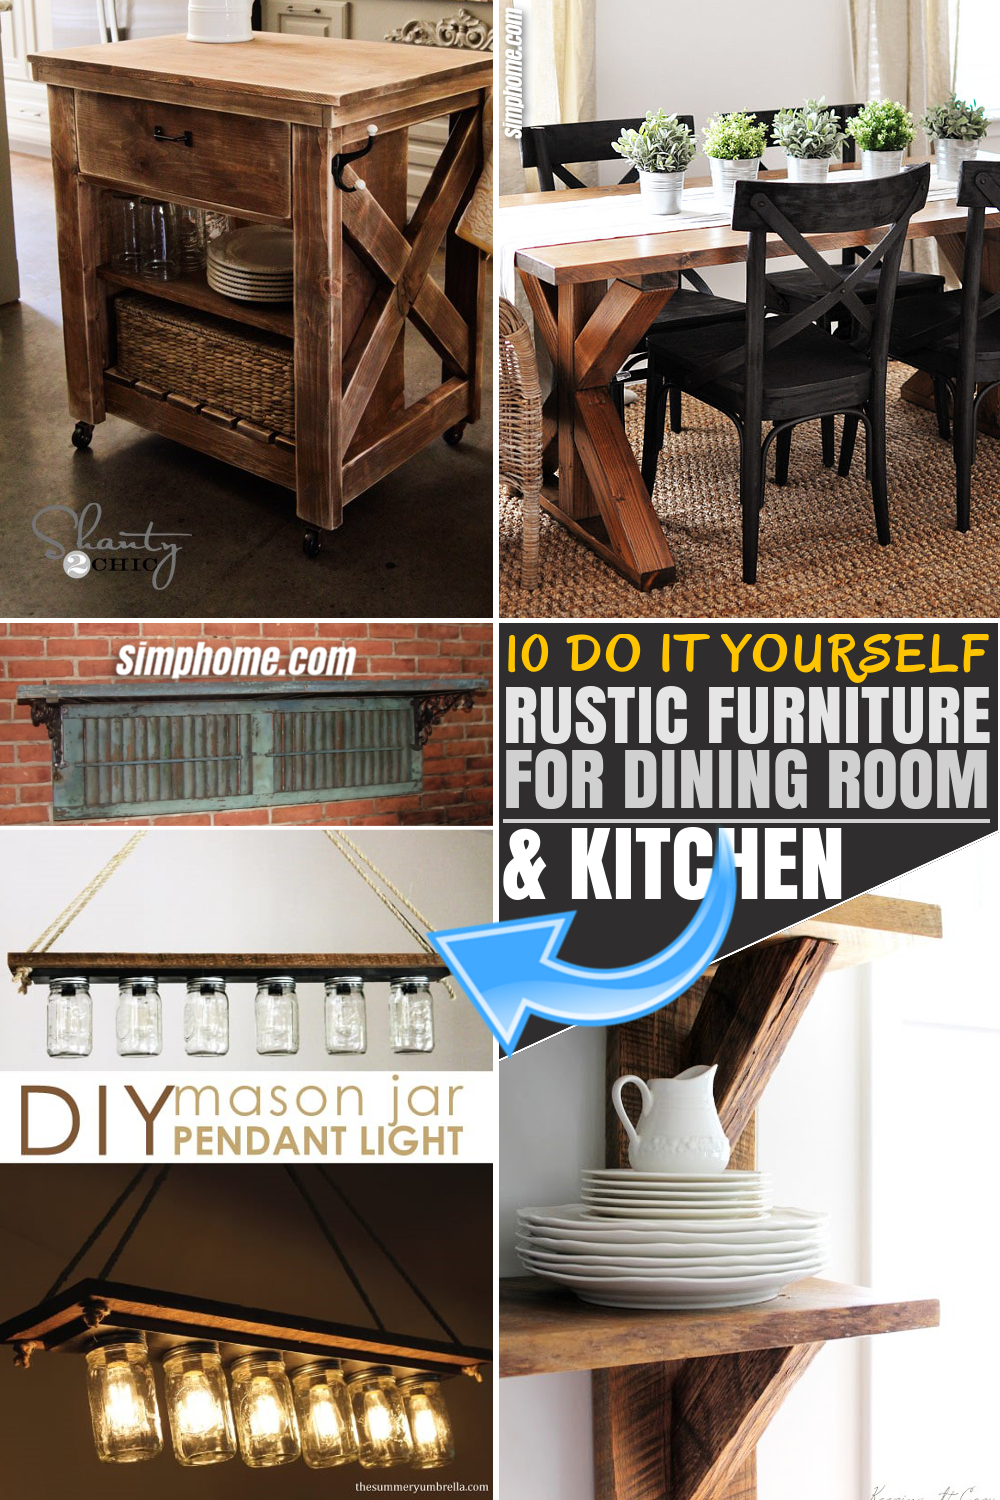 SIMPHOME.COM 10 DIY Rustic Furniture Ideas for Dining Room and Kitchen Pinterest Image Featured